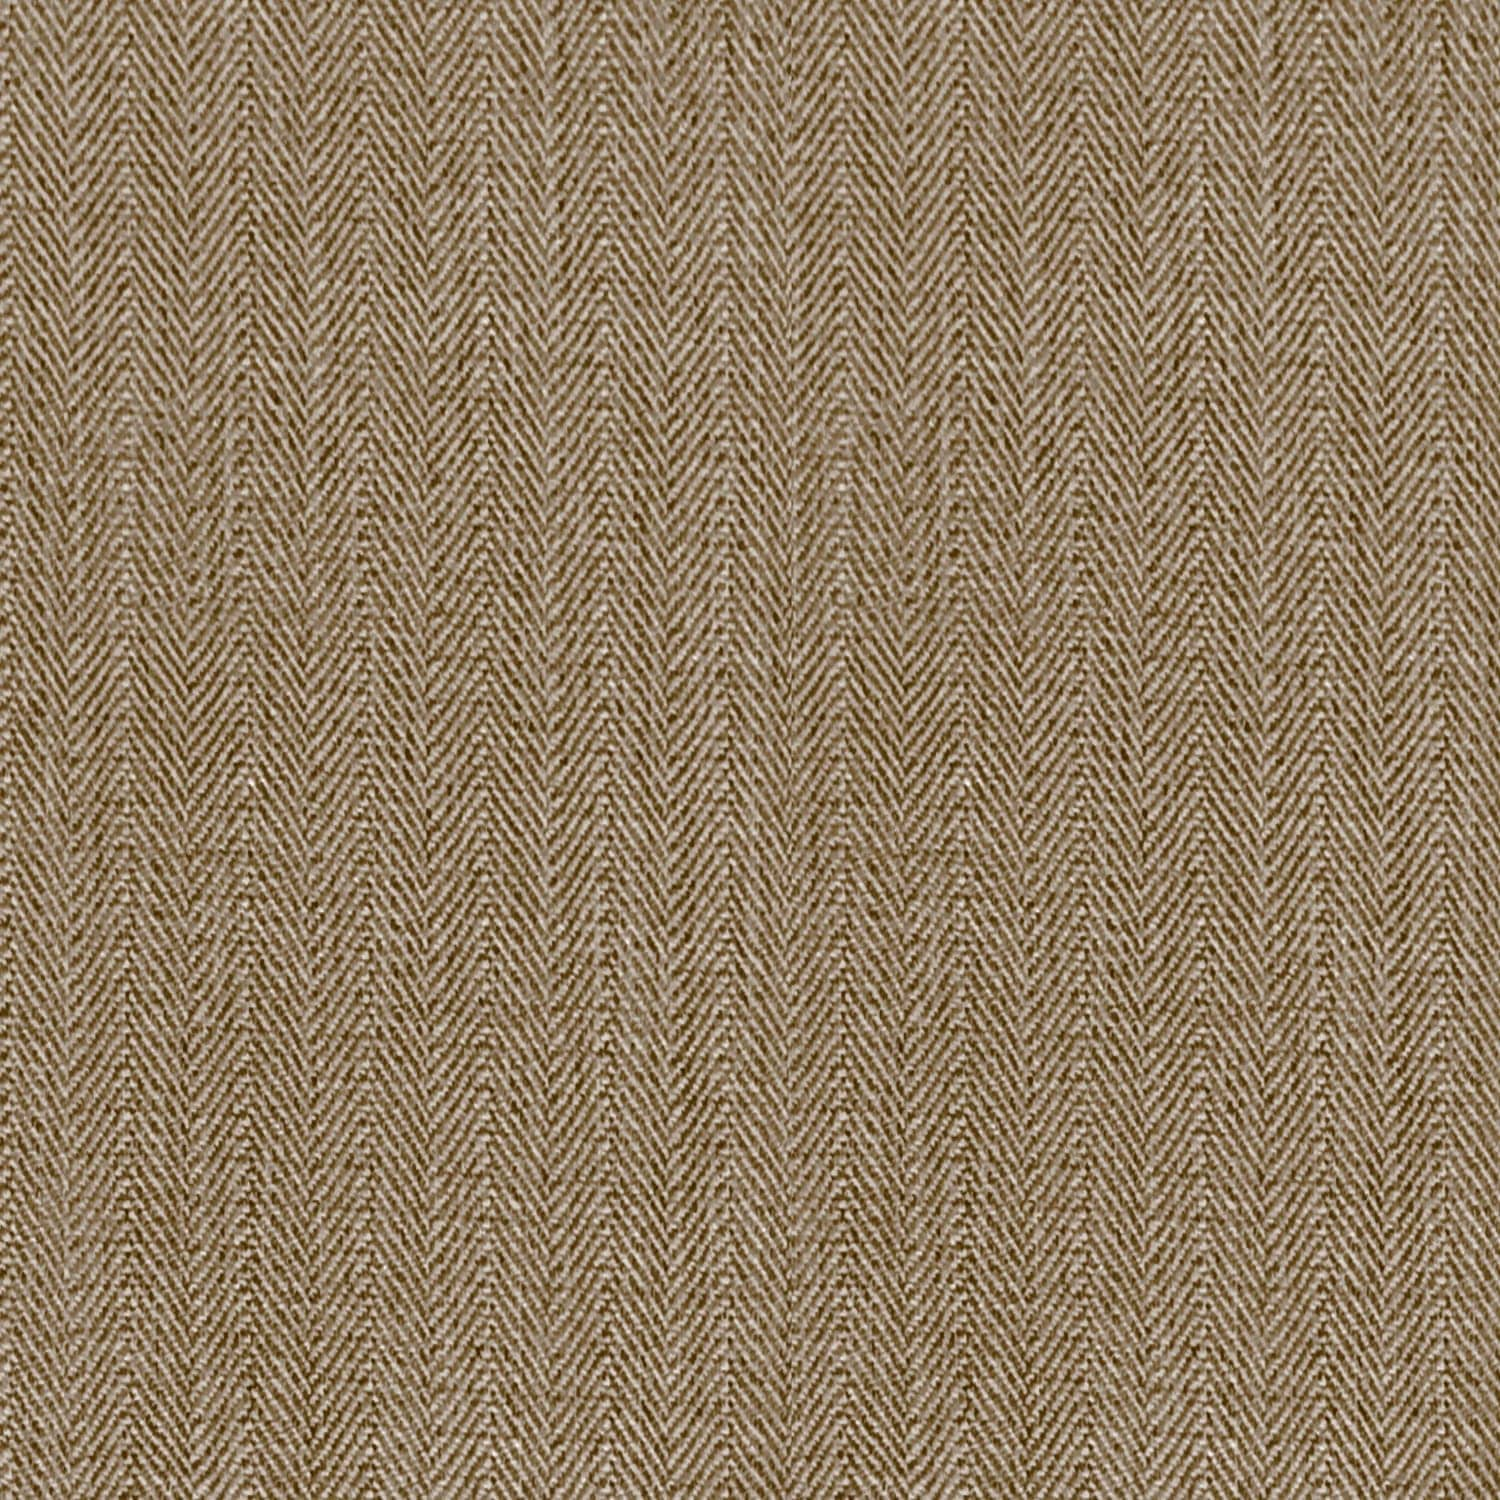 Sunbrella: Boss Tweed Mink (grade 3): #BOS10127<br>Extreme durability; cleans with water; no sun discoloration